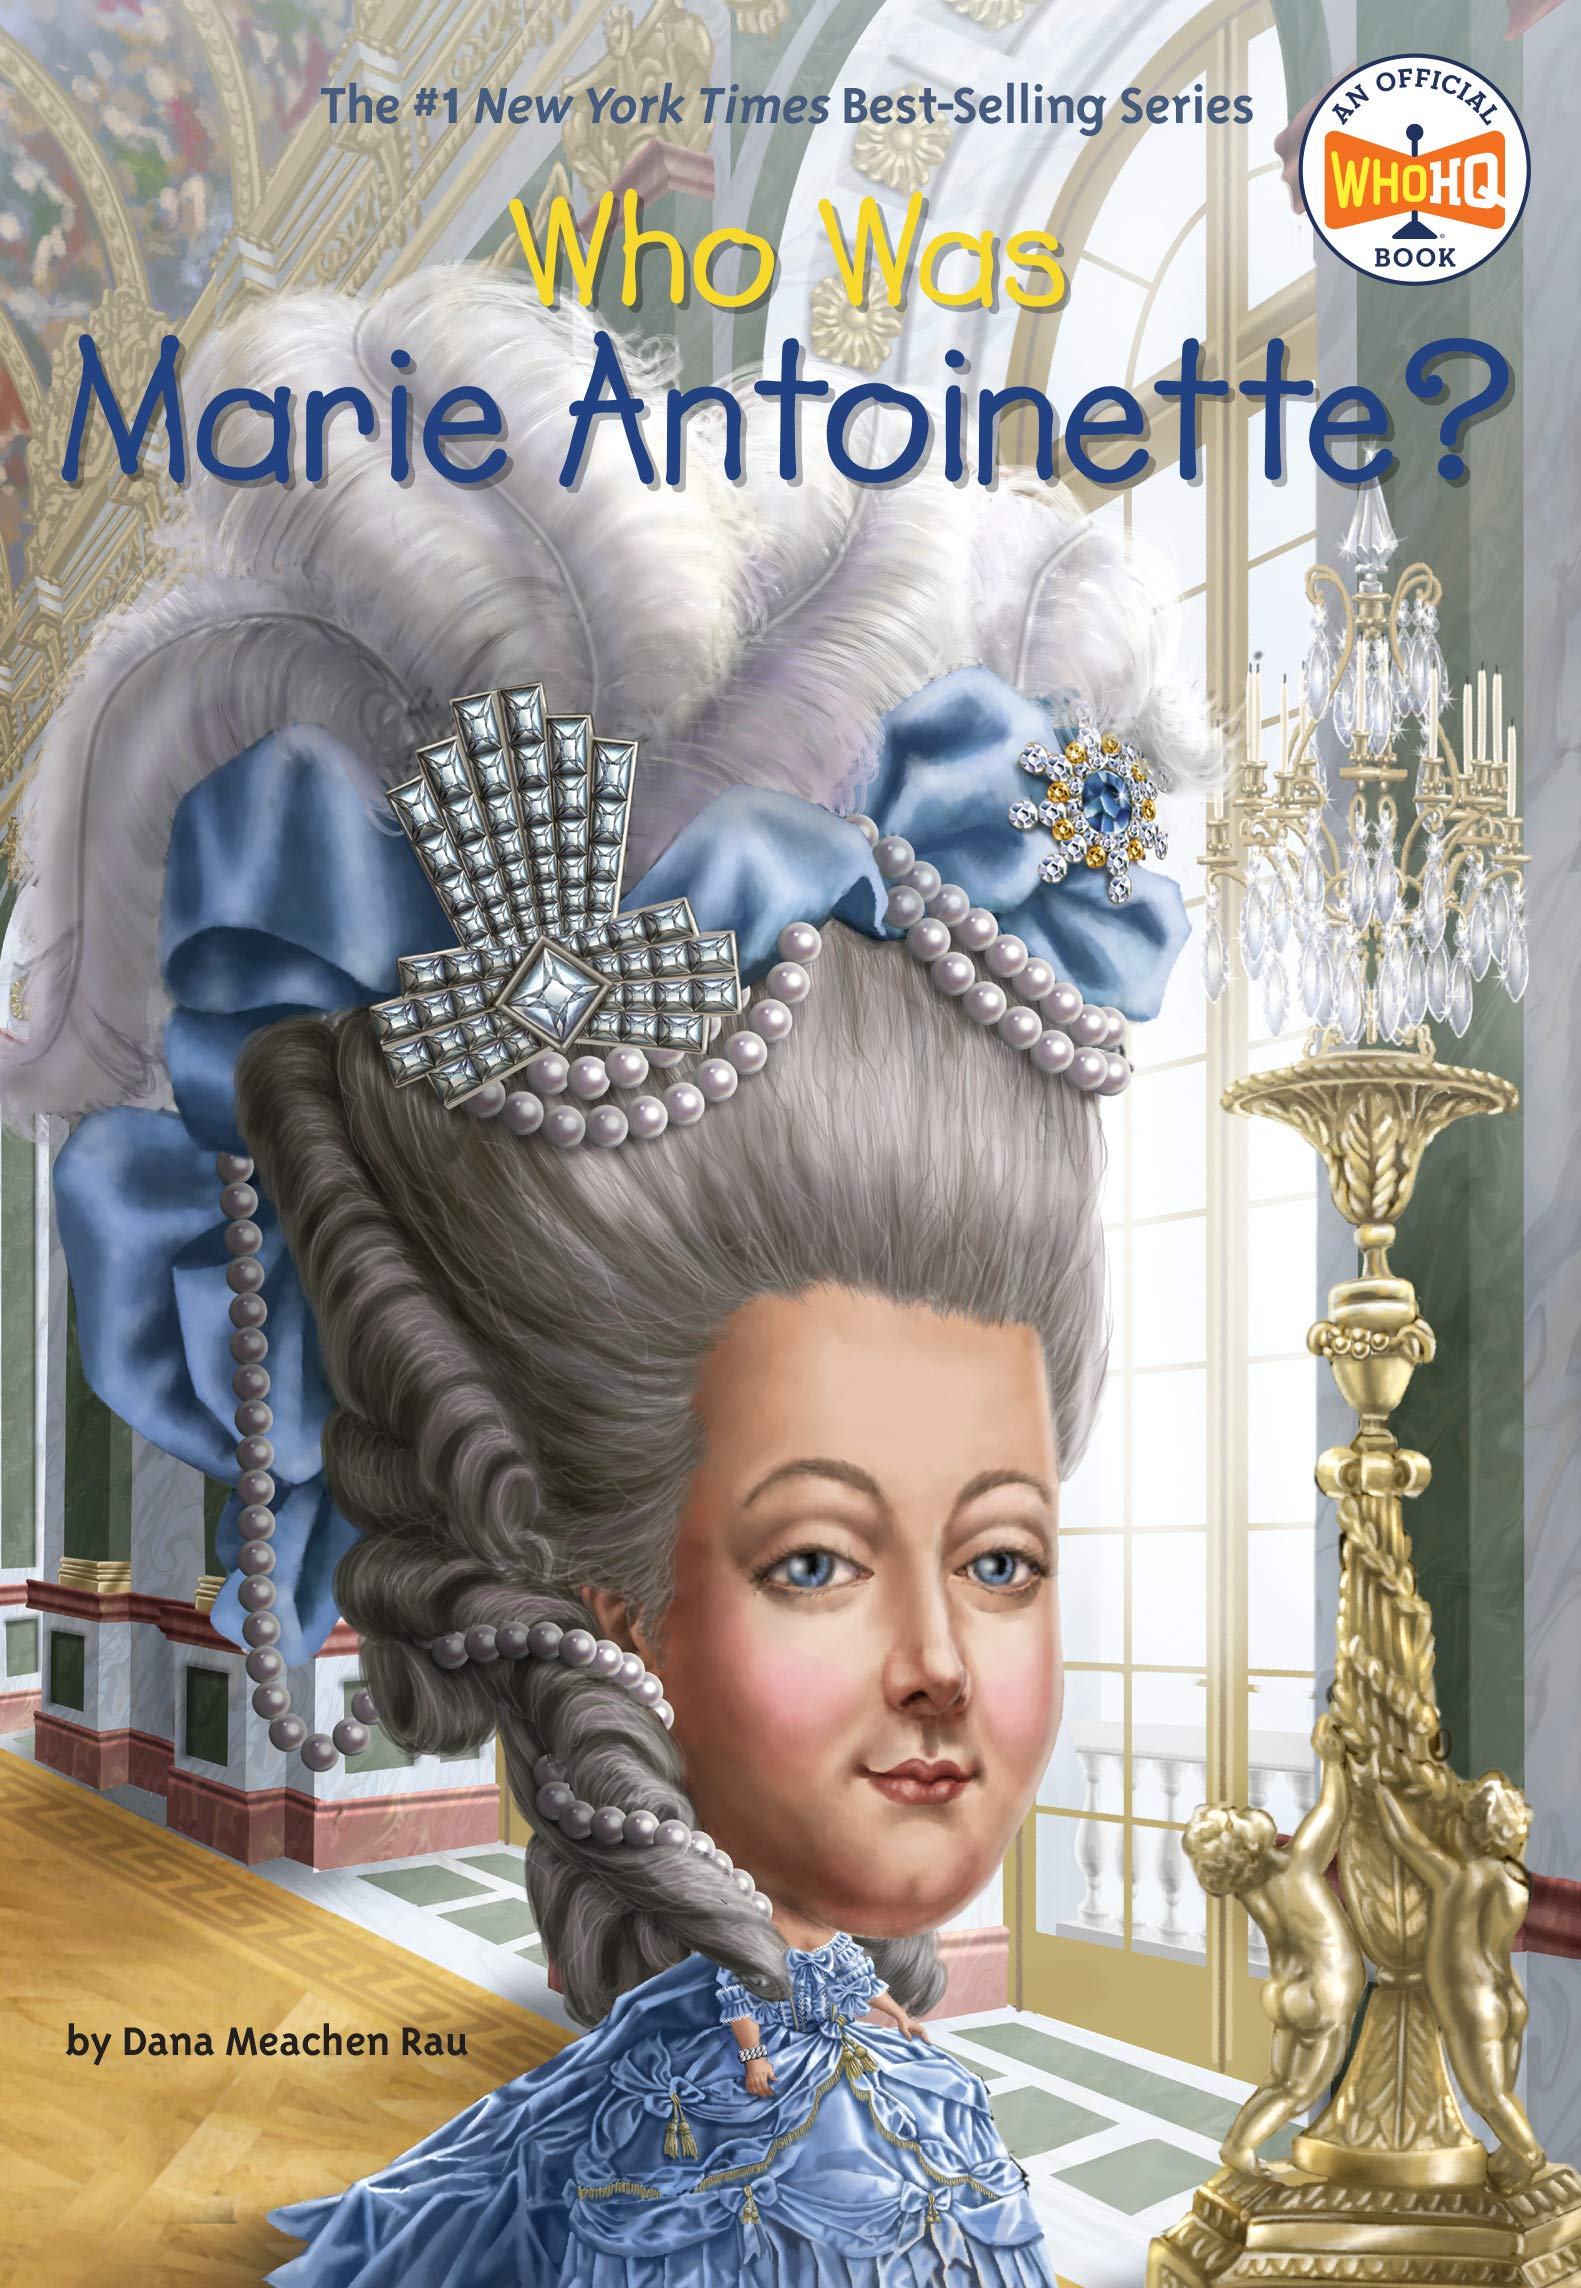 who did marie antoinette marry